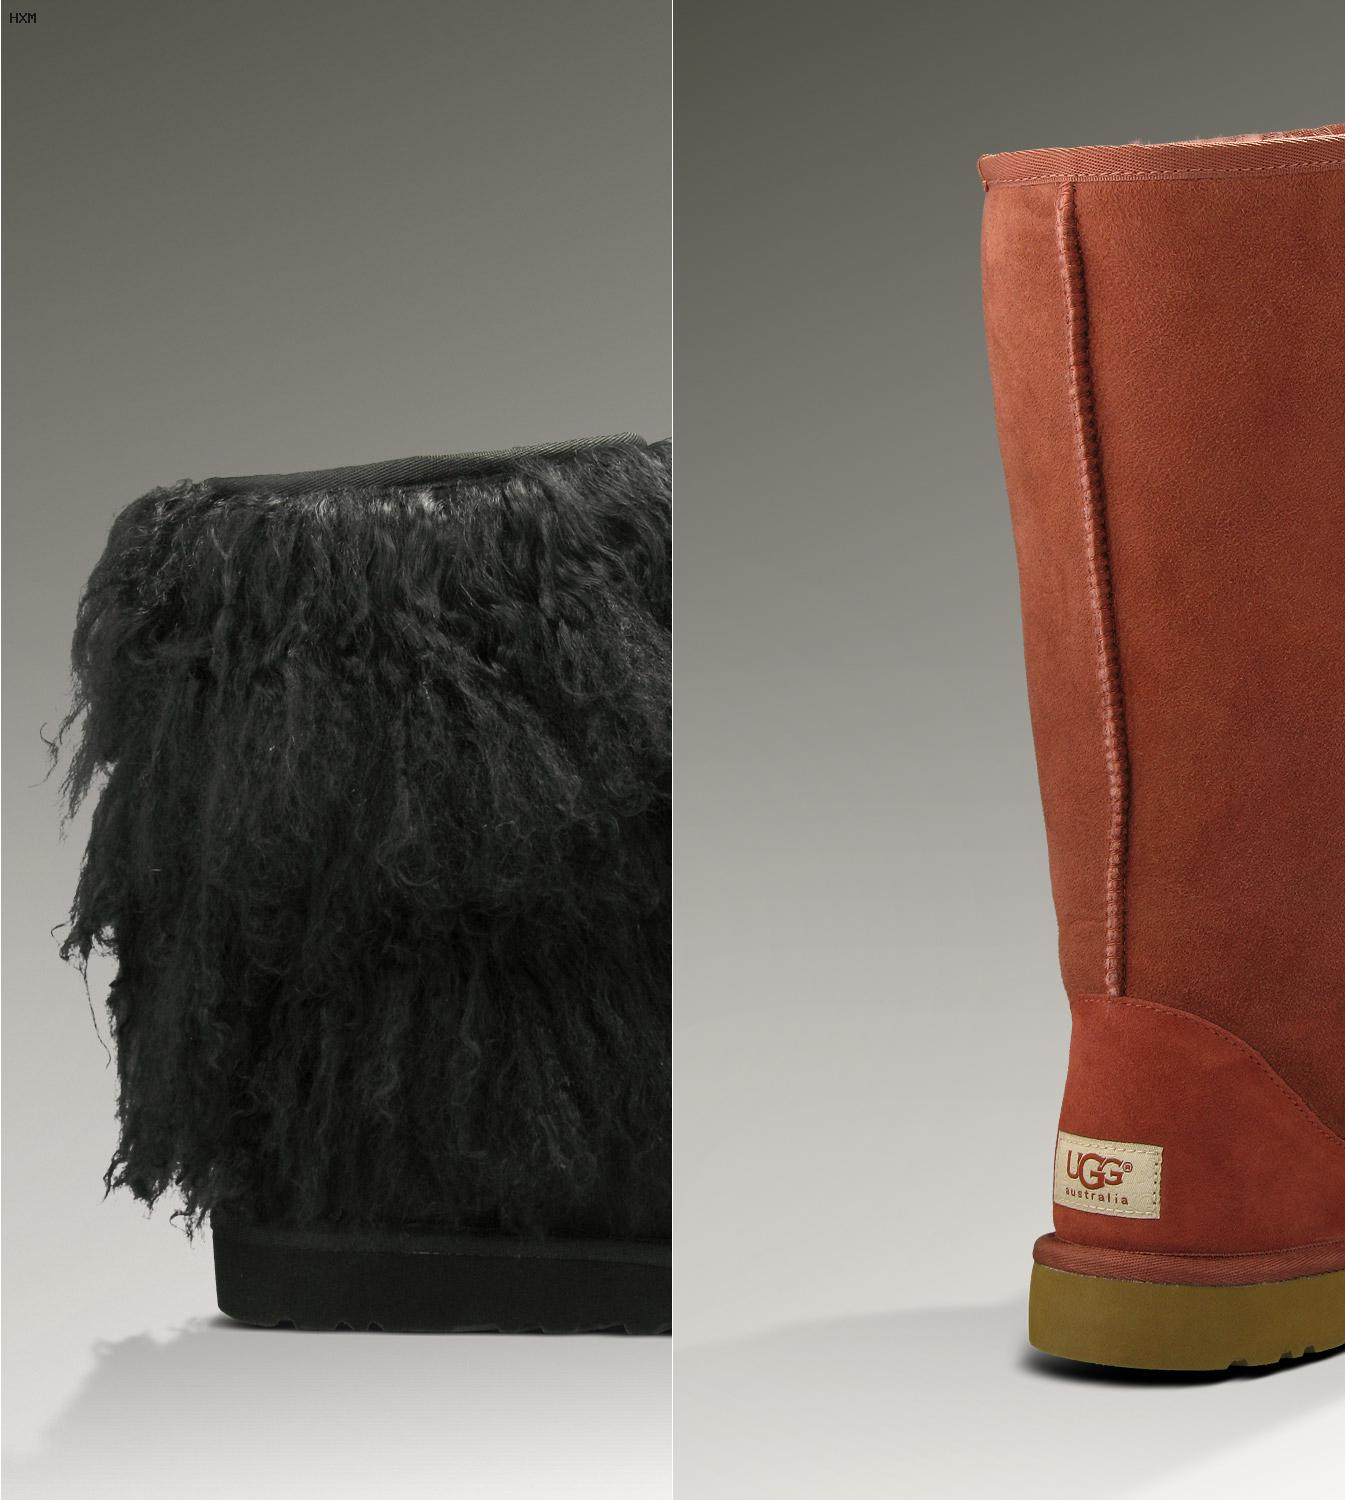 ugg boots america online